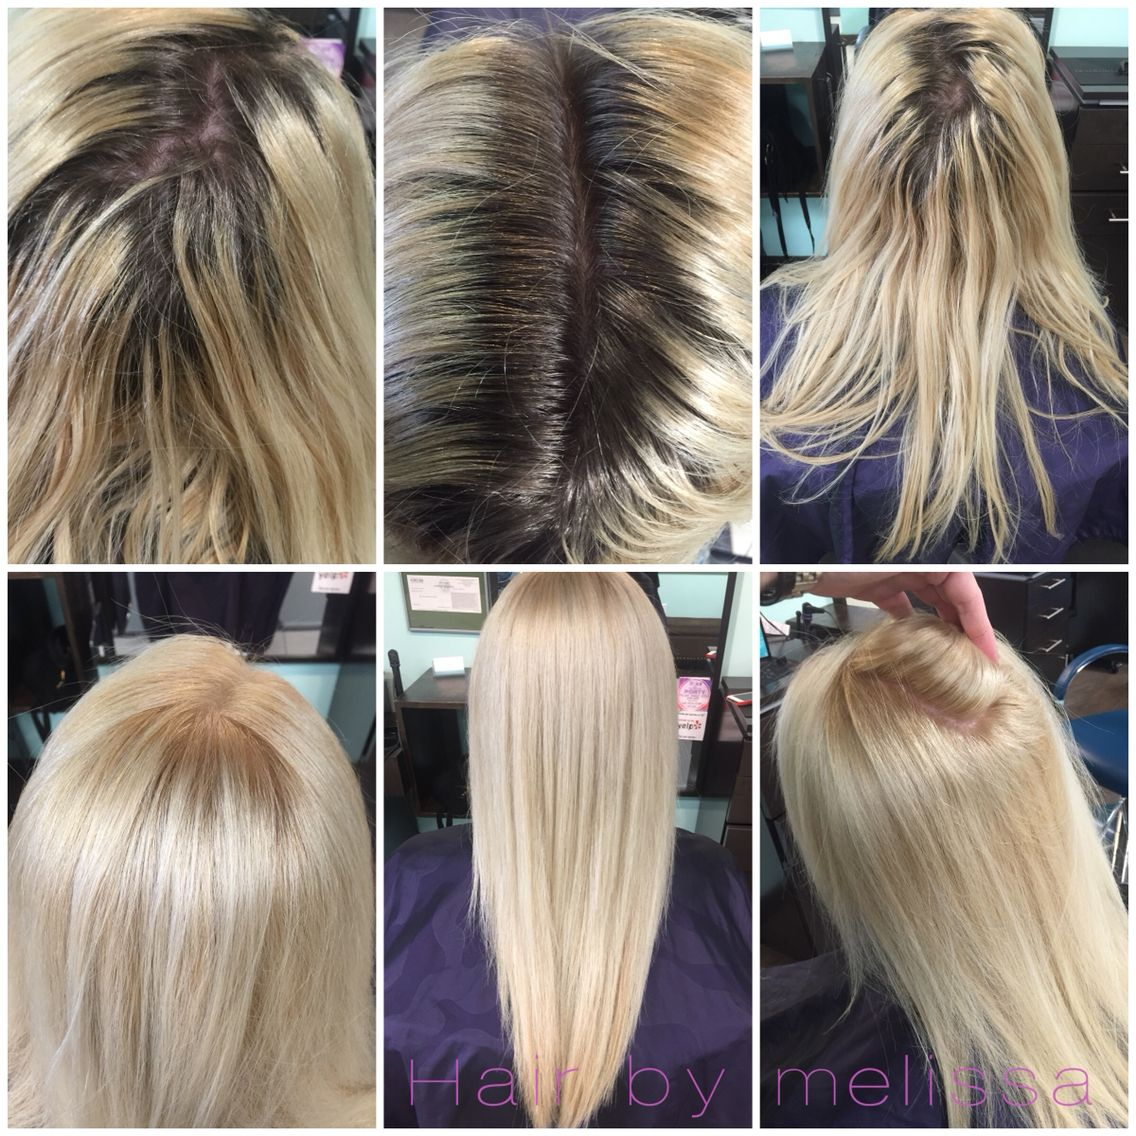 Before And After Using Redken Extra Lift Ln And B At Root Toned All Over With 9t At Bowl Blonde Hair Color Chart Hair Color Formulas Redken Color